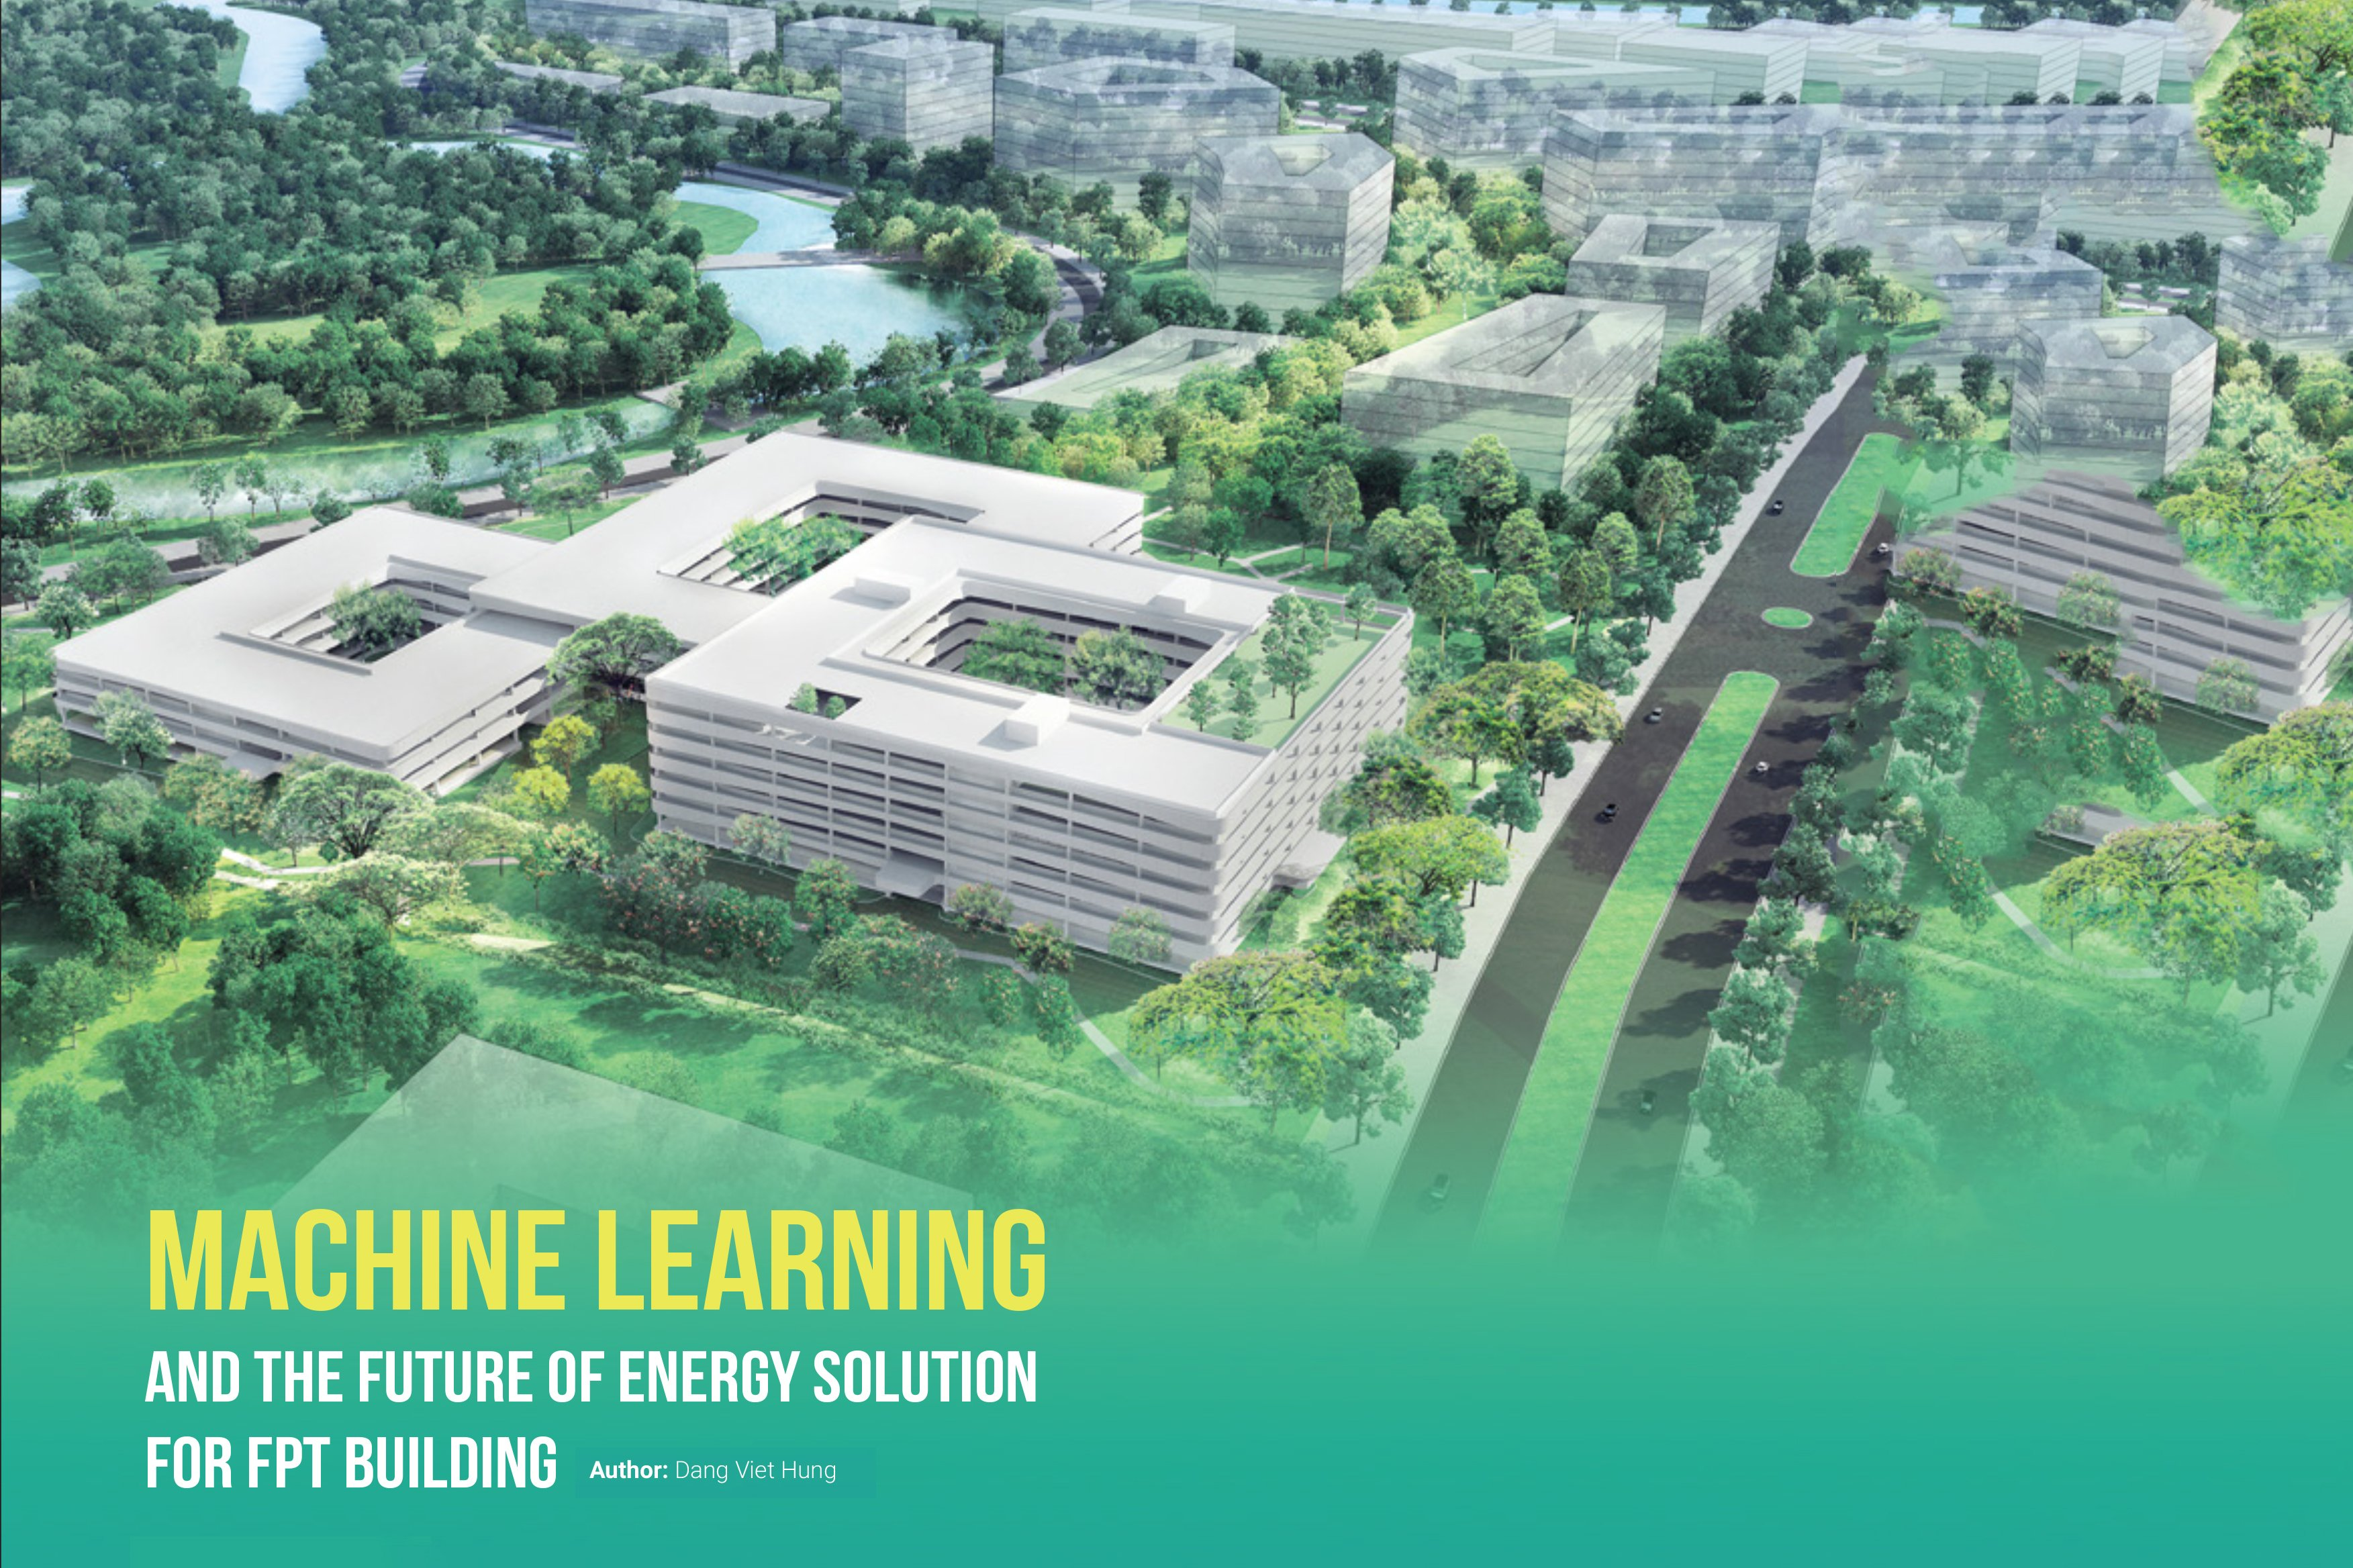 Machine Learning and the Future of Energy Solution for FPT Building